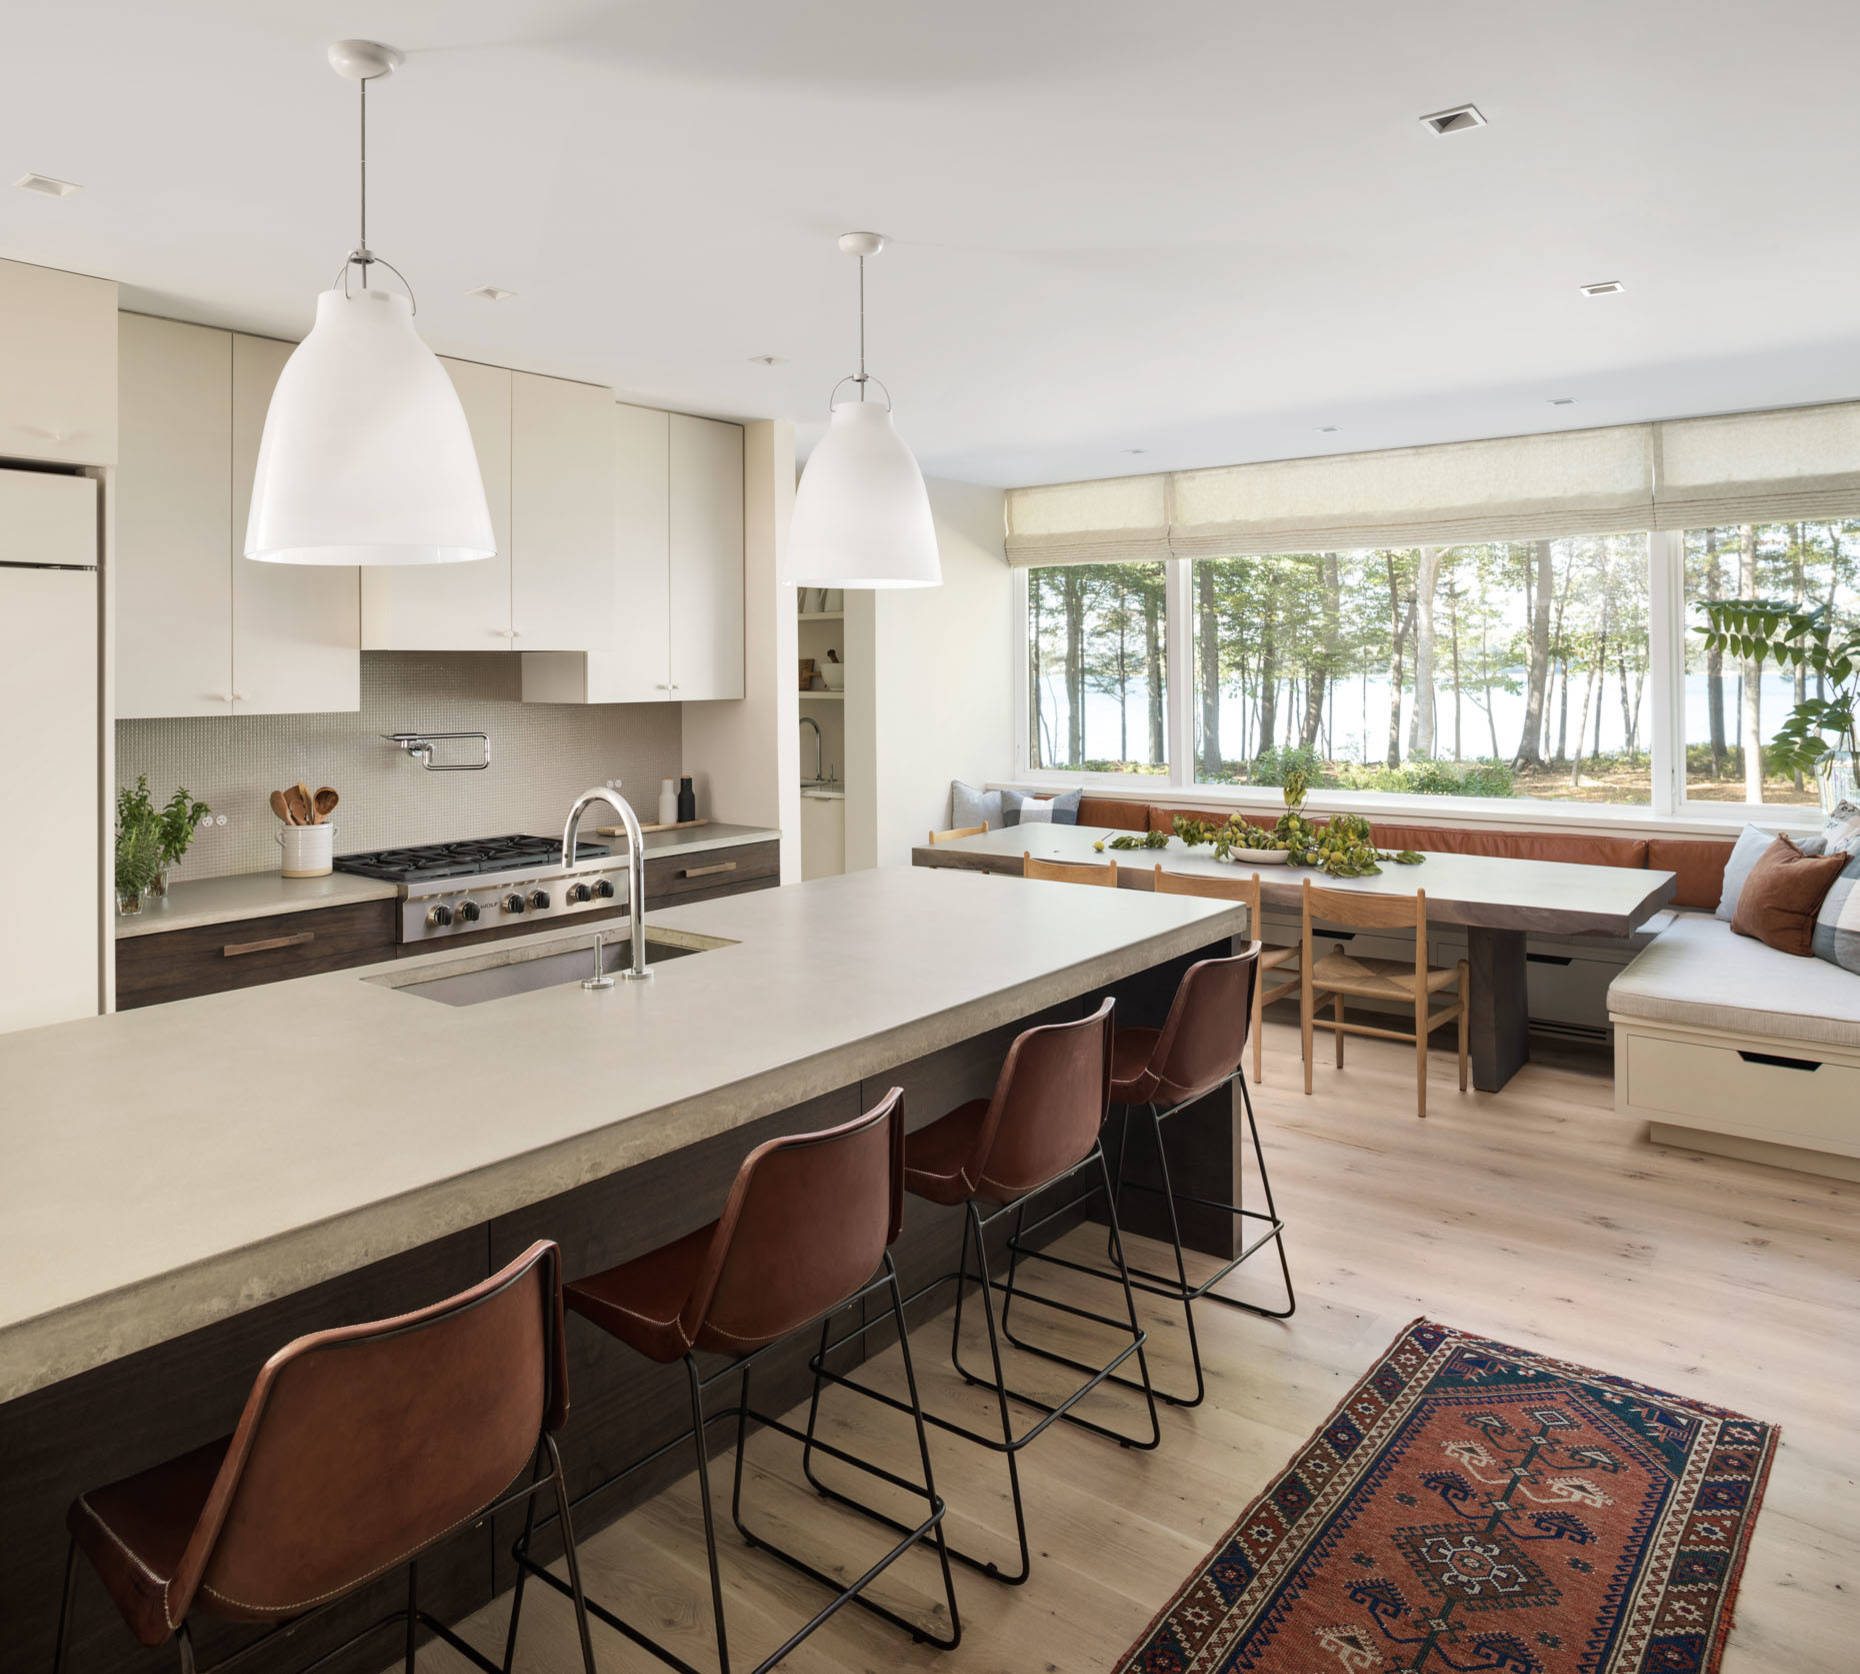 classic tropical island home decor home improvement.htm 75 beautiful kitchen with beige cabinets and concrete countertops  beige cabinets and concrete countertops